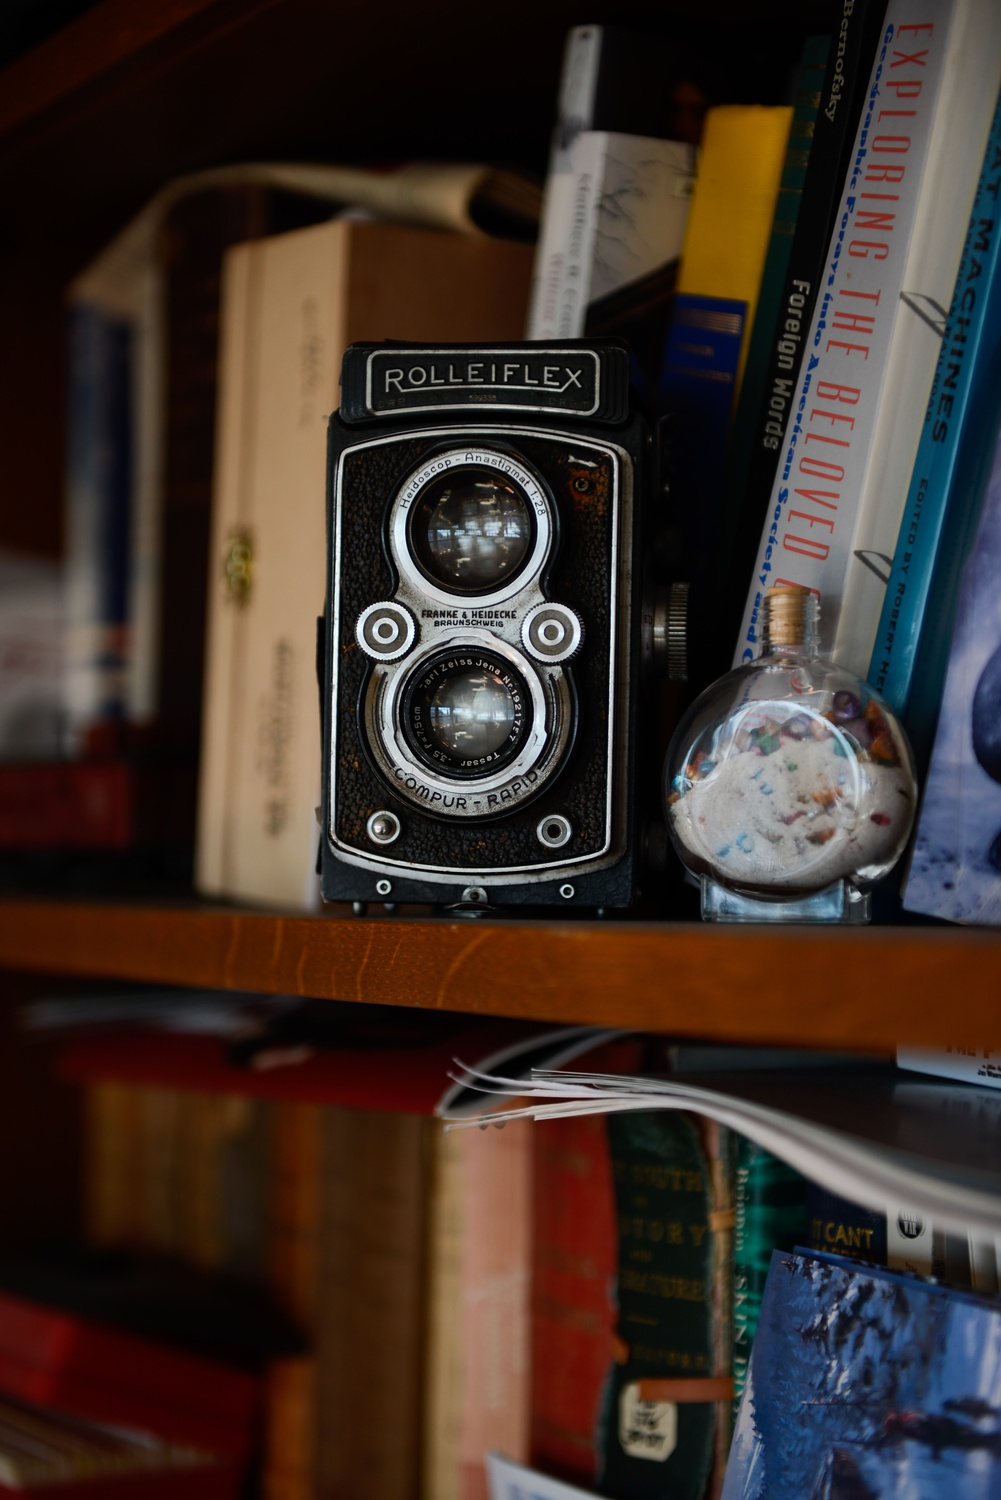 Stilgoe often takes photos for his books with dual-reflex lens cameras, such as this Rolleiflex.